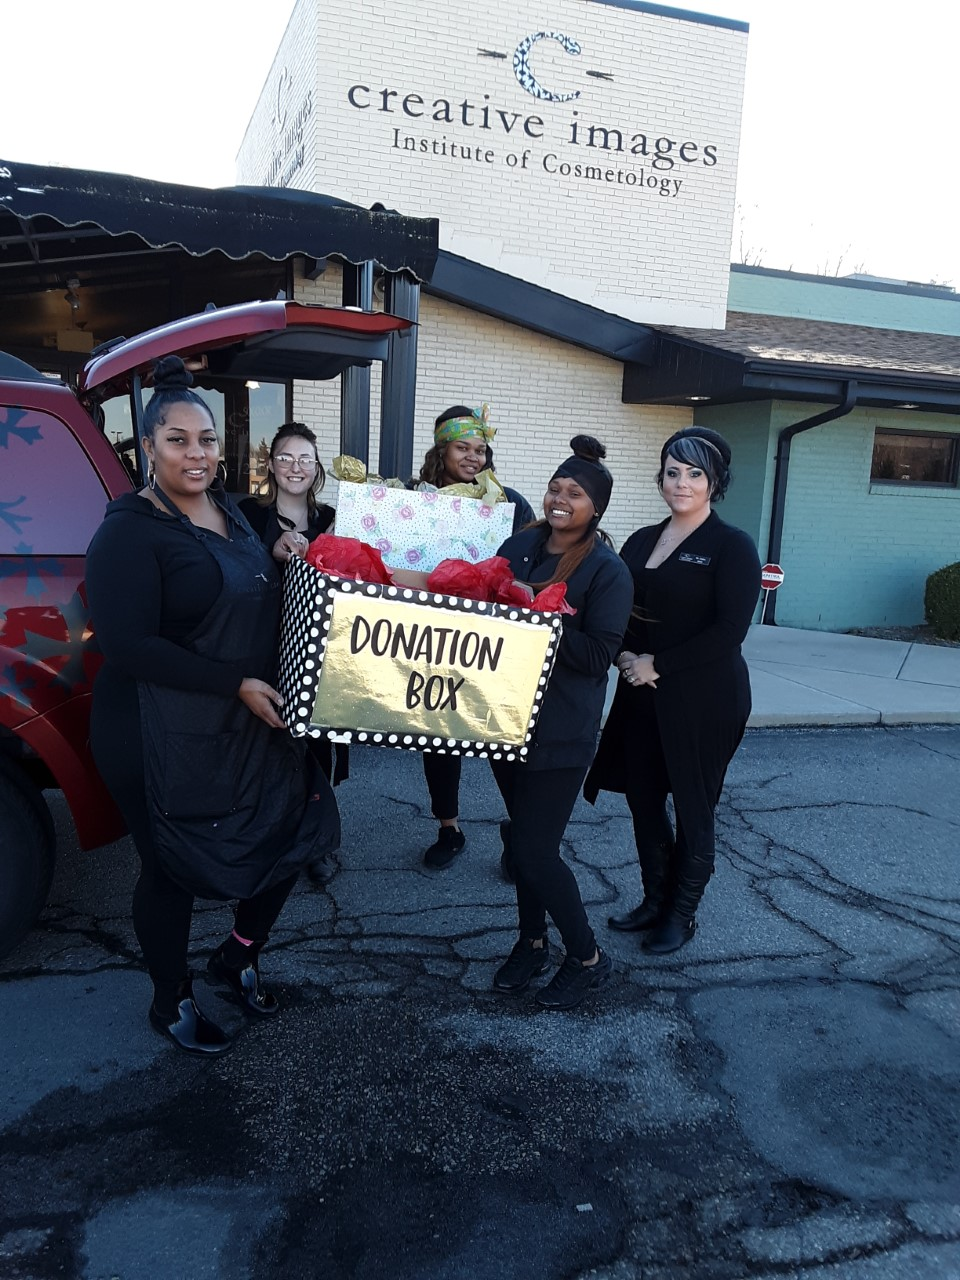 Students of local Dayton Cosmetology school raise donations for Toys for Tots